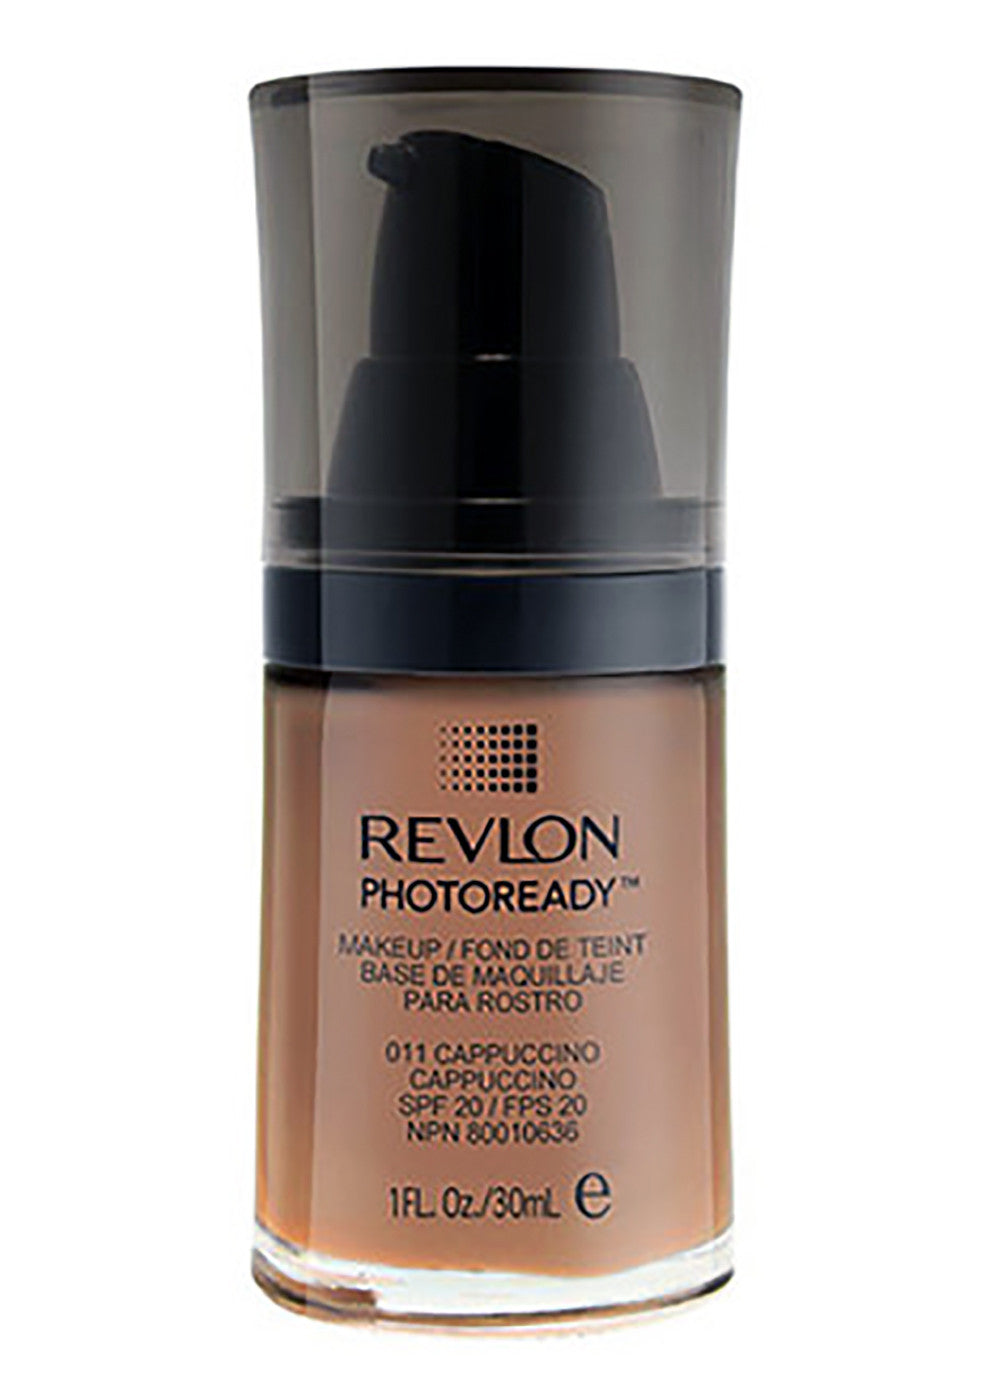 REVLON PHOTOREADY Makeup #011 CAPPUCCINO Liquid Foundation SPF 20